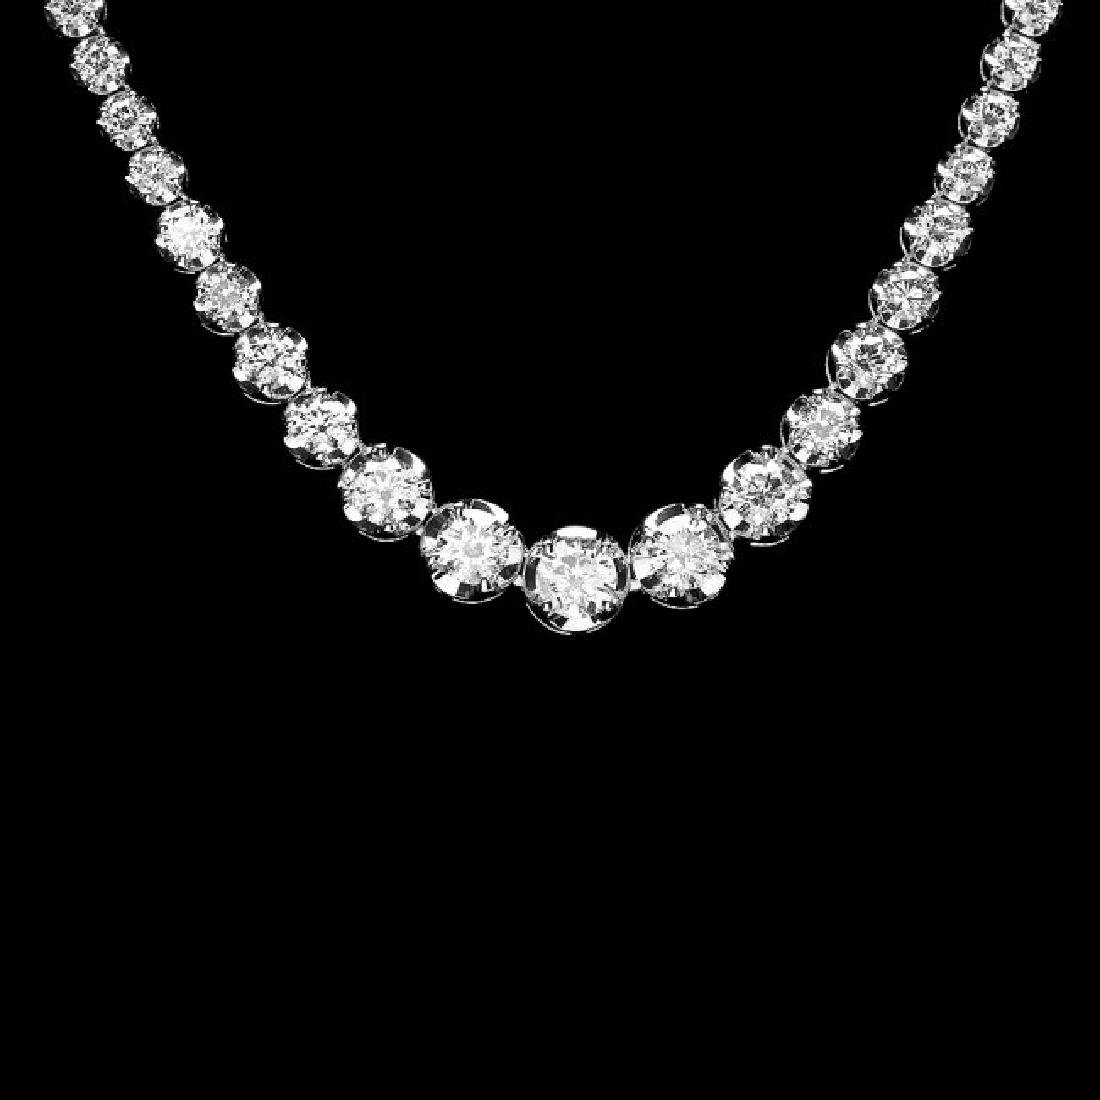 18k White Gold 10.20ct Diamond Necklace